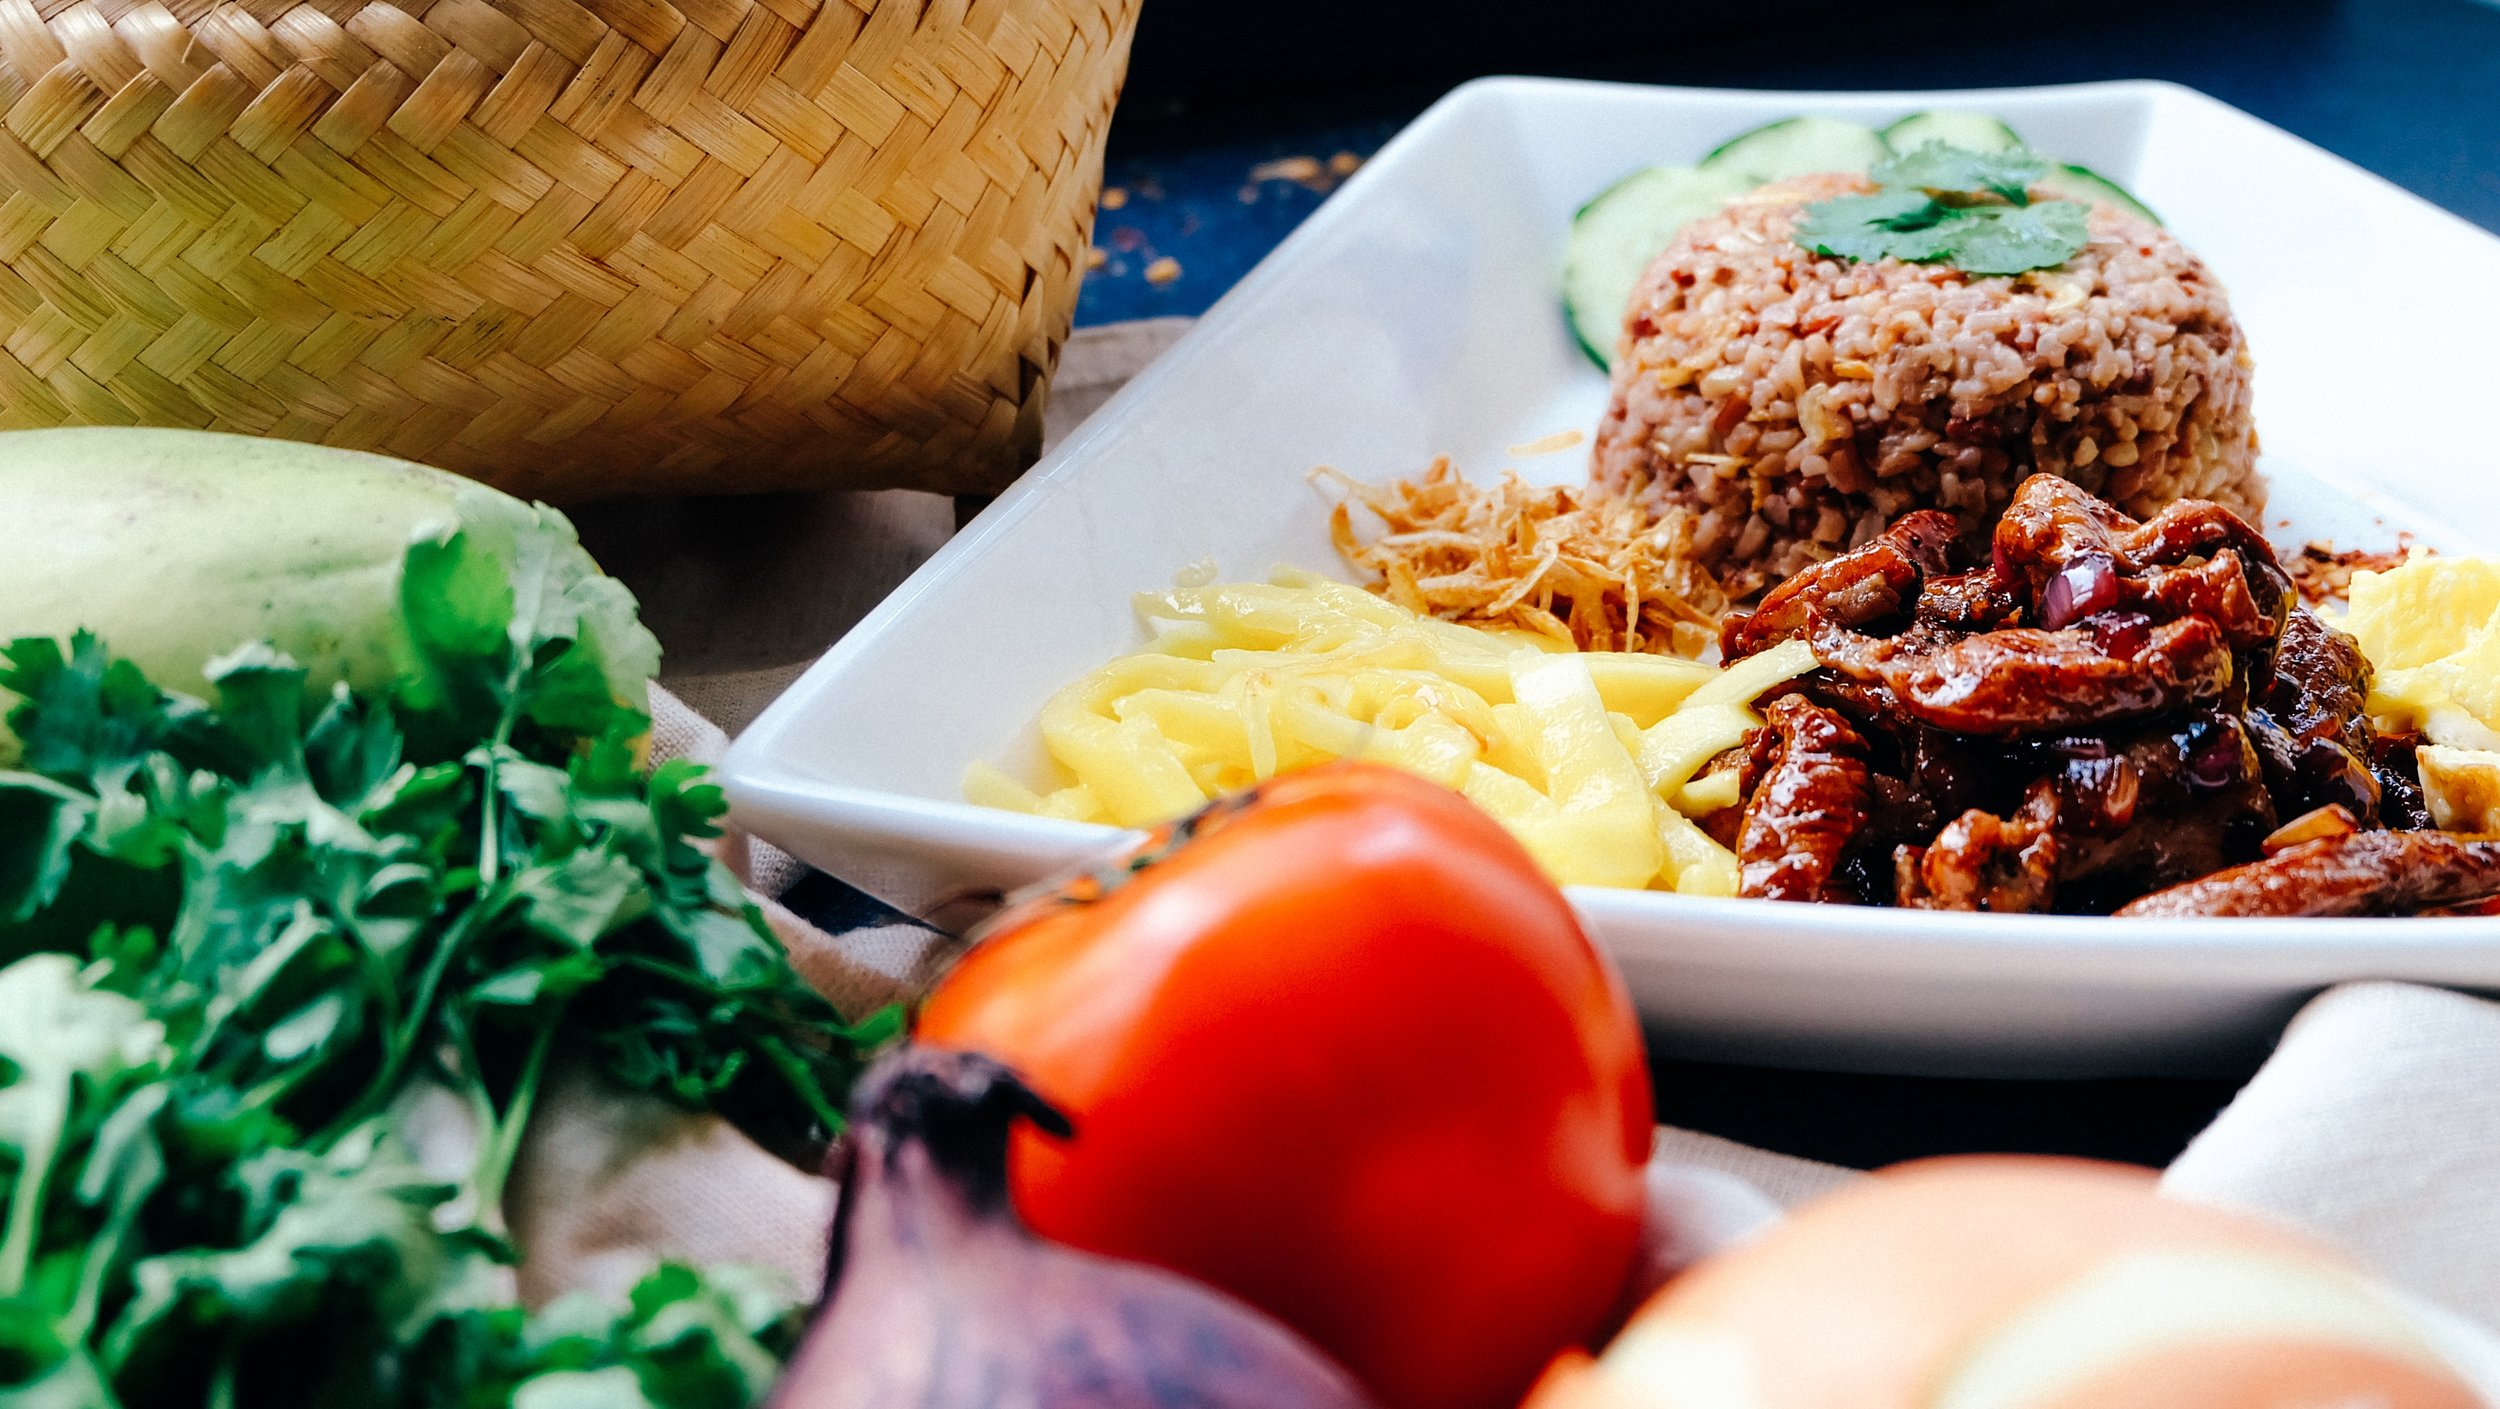 """Chinese-style rice along with Peruvian ingredients and staples, such as potatoes, have become all part of the famous """"Chifa""""!"""